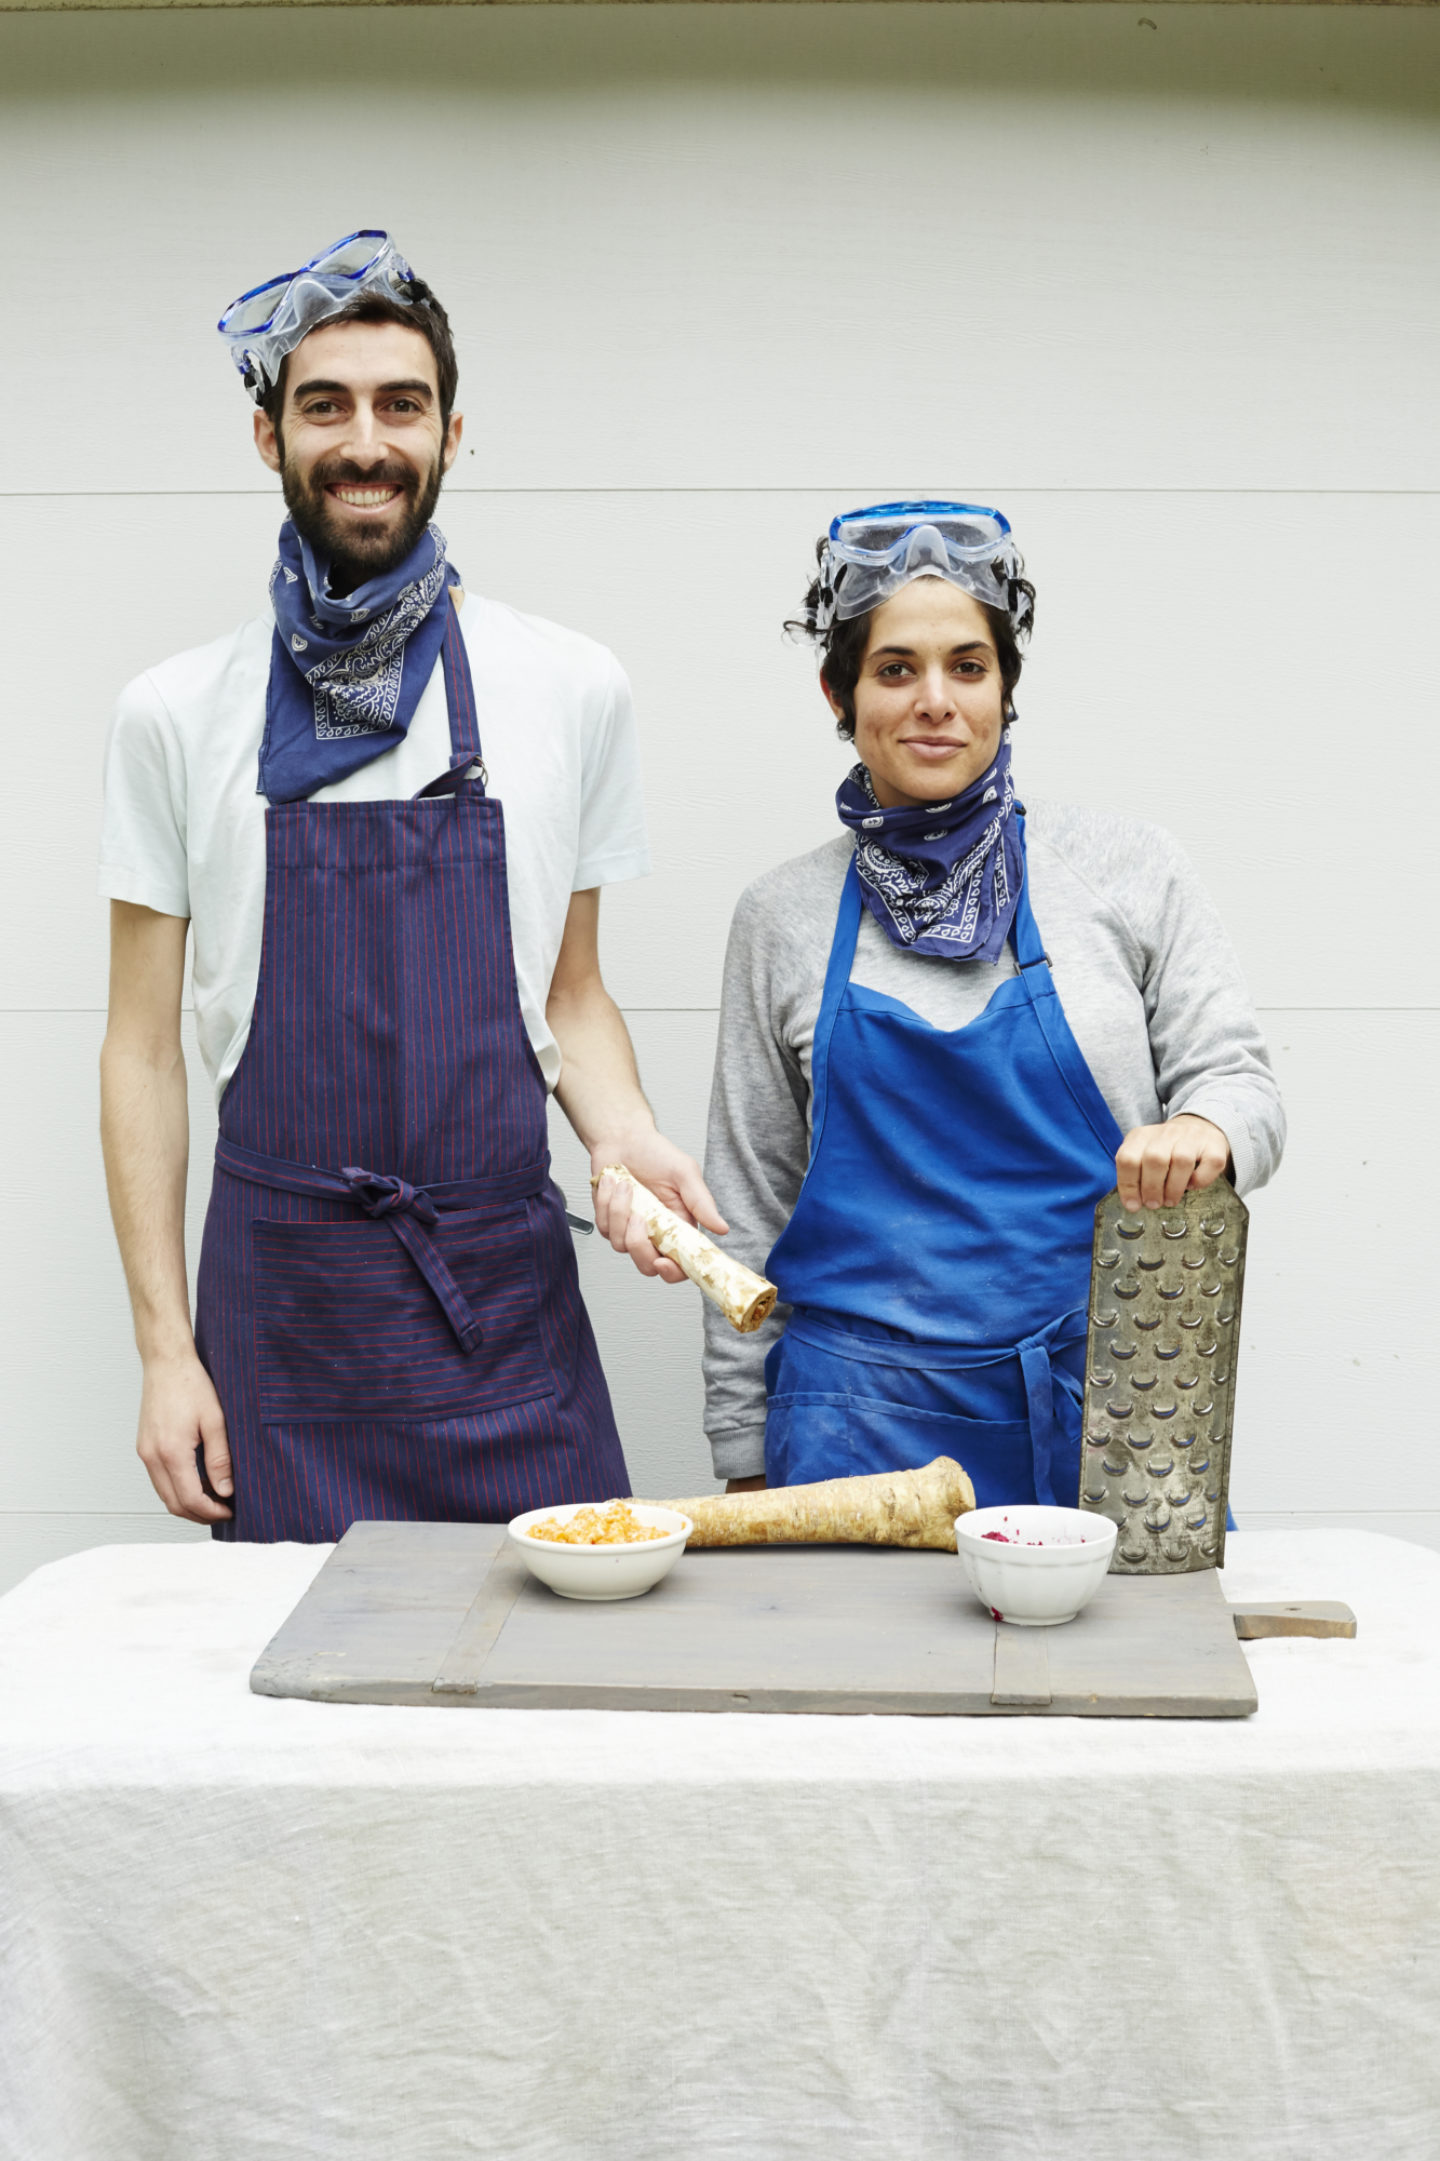 <p>Authors of <em>The Gefilte Manifesto</em>, Jeffrey Yoskowitz and Liz Alpern. Photo credit Lauren Volo. </p>